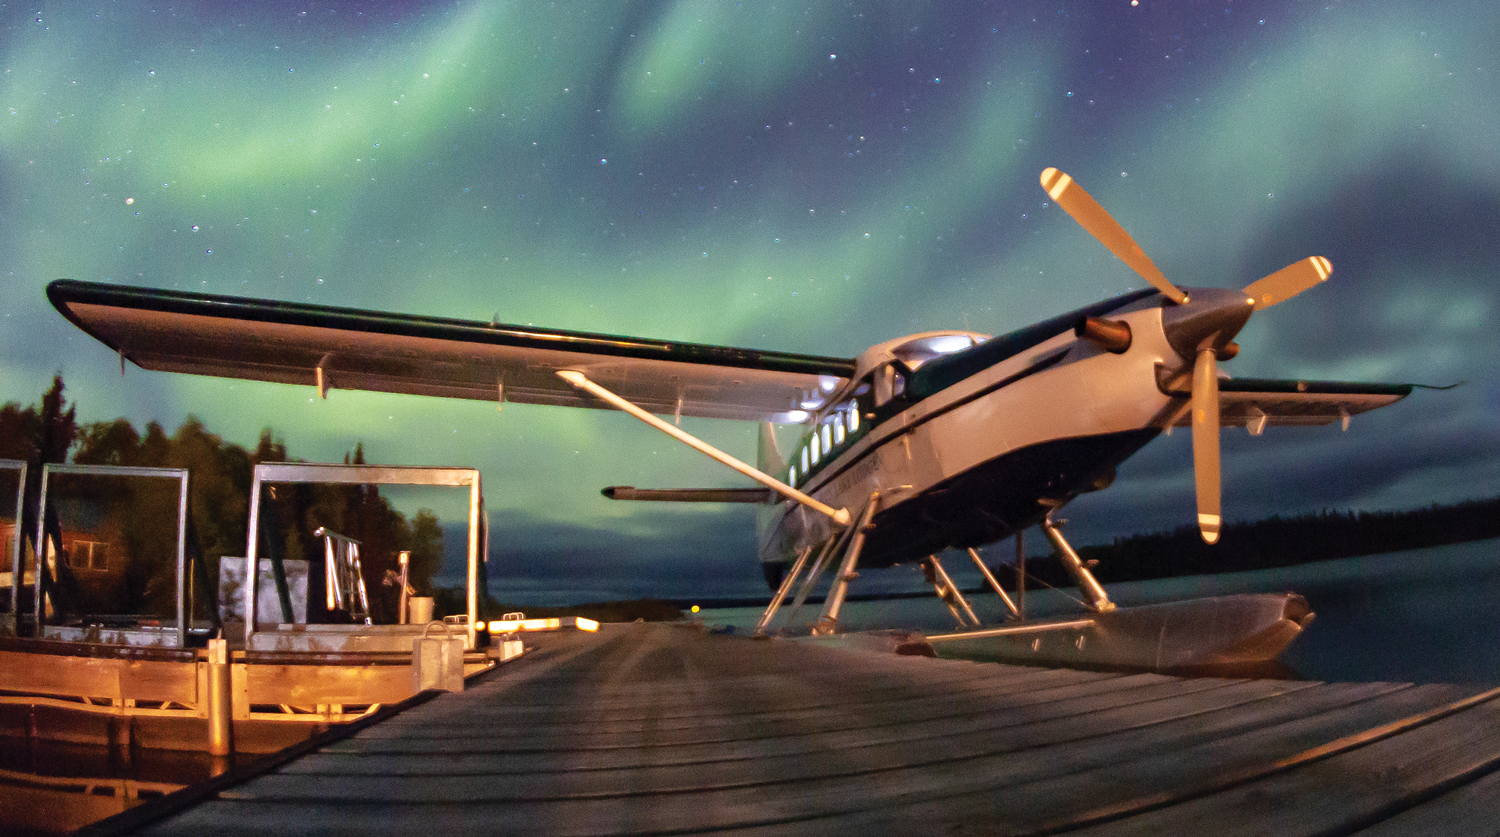 Photo of airplane and Northern Lights.